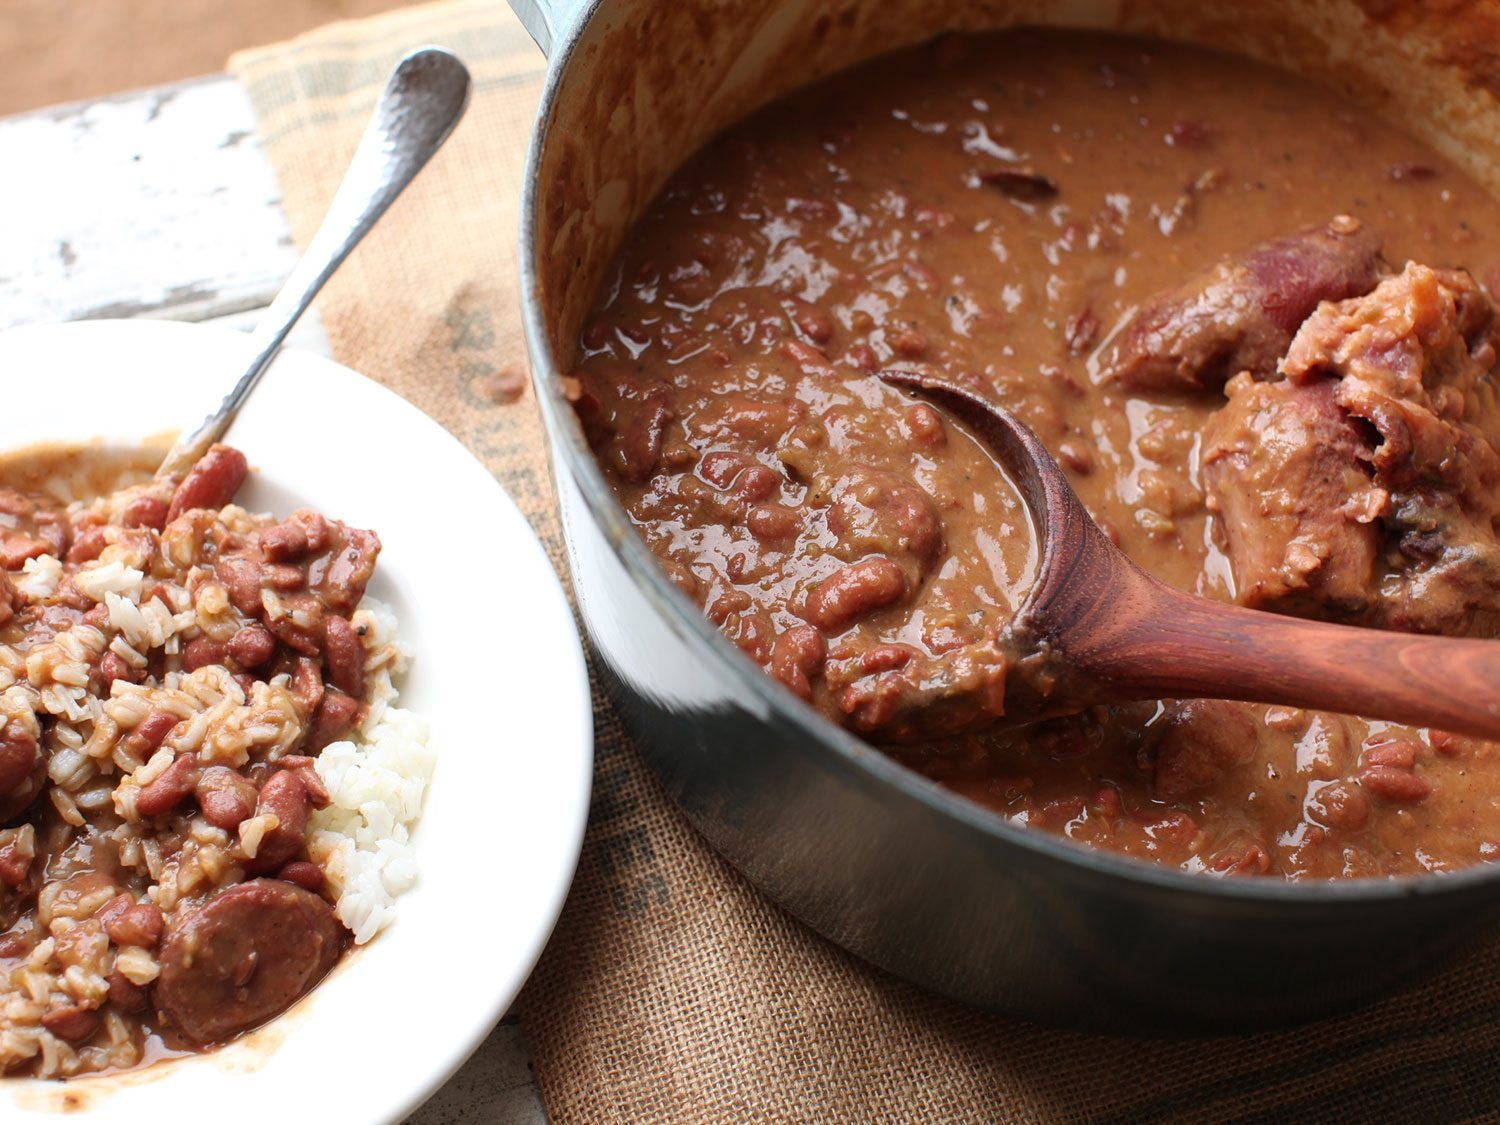 20170411-red-beans-and-rice-08-1500x1125